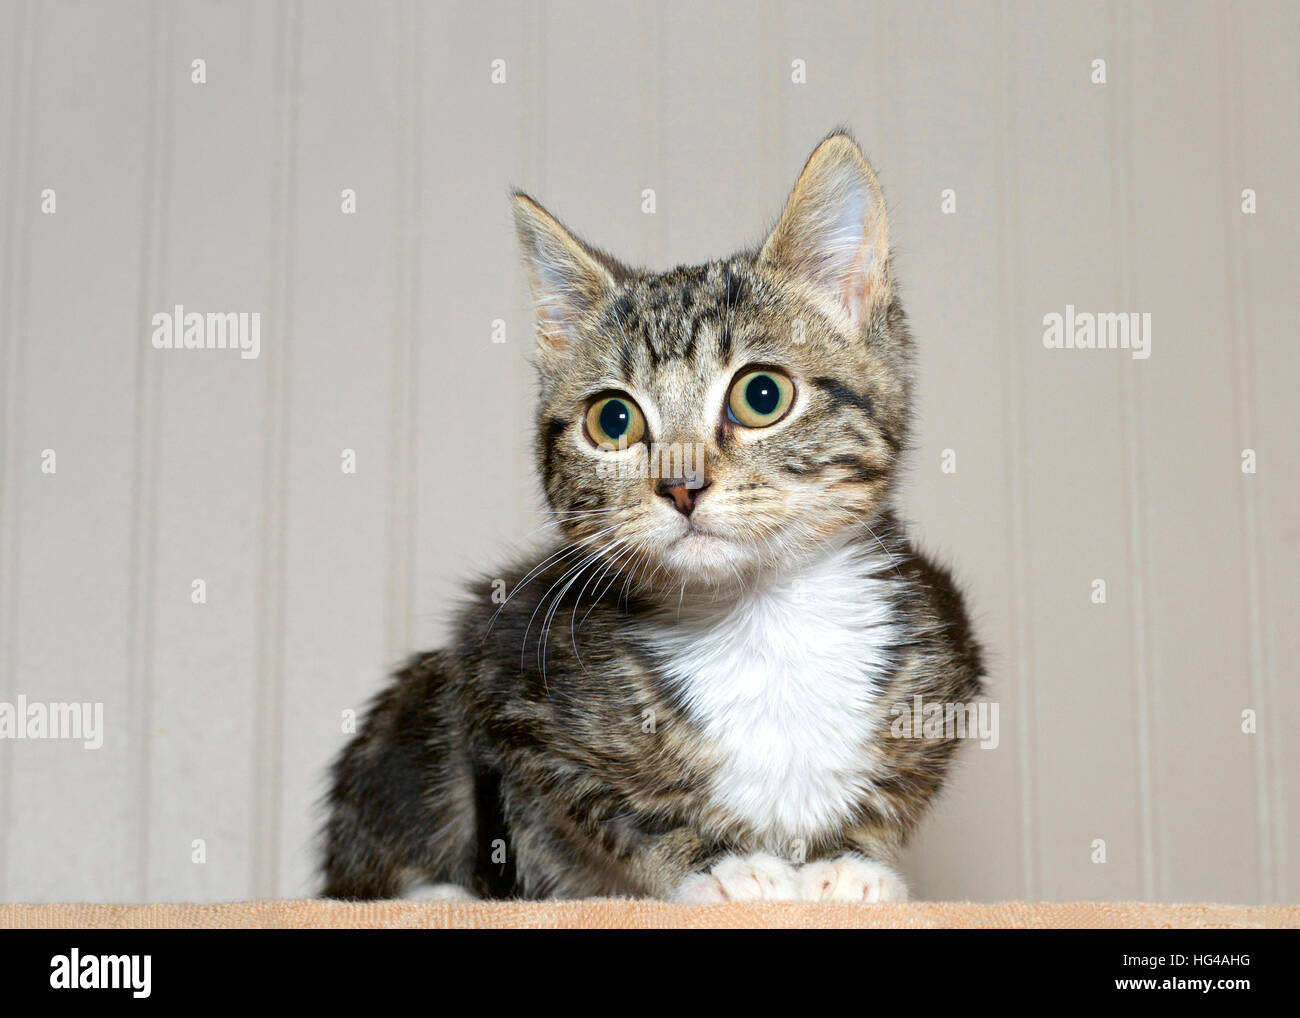 gray and black striped tabby kitten with white chest and